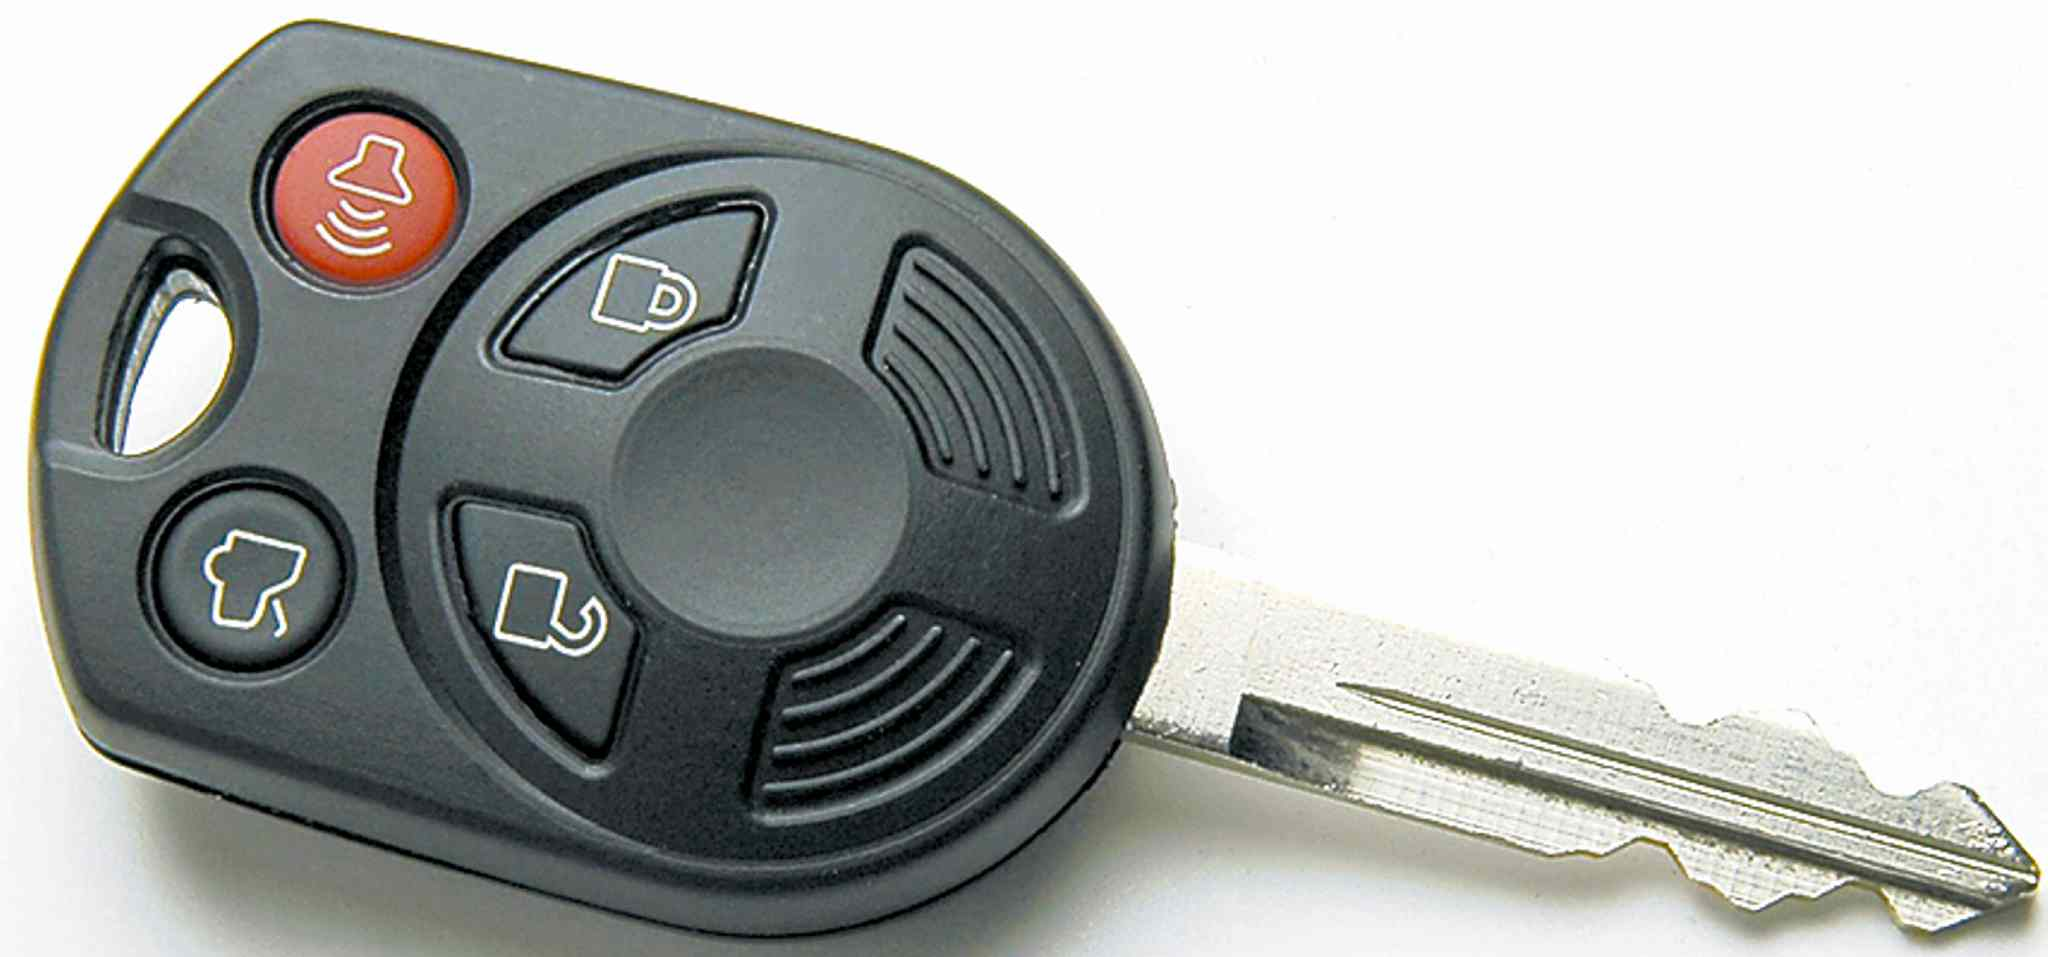 In this undated photo provided by Ford Motor Co., of a MyKey. Starting next year, Ford Motor Co. will roll out a new feature, controlled by a computer chip in the key, that allows parents to limit the car's speeds to 80 mph and set a maximum volume for the audio system on some 2010 models. (AP Photo/Ford Motor Co.)**NO SALE close cut closecut